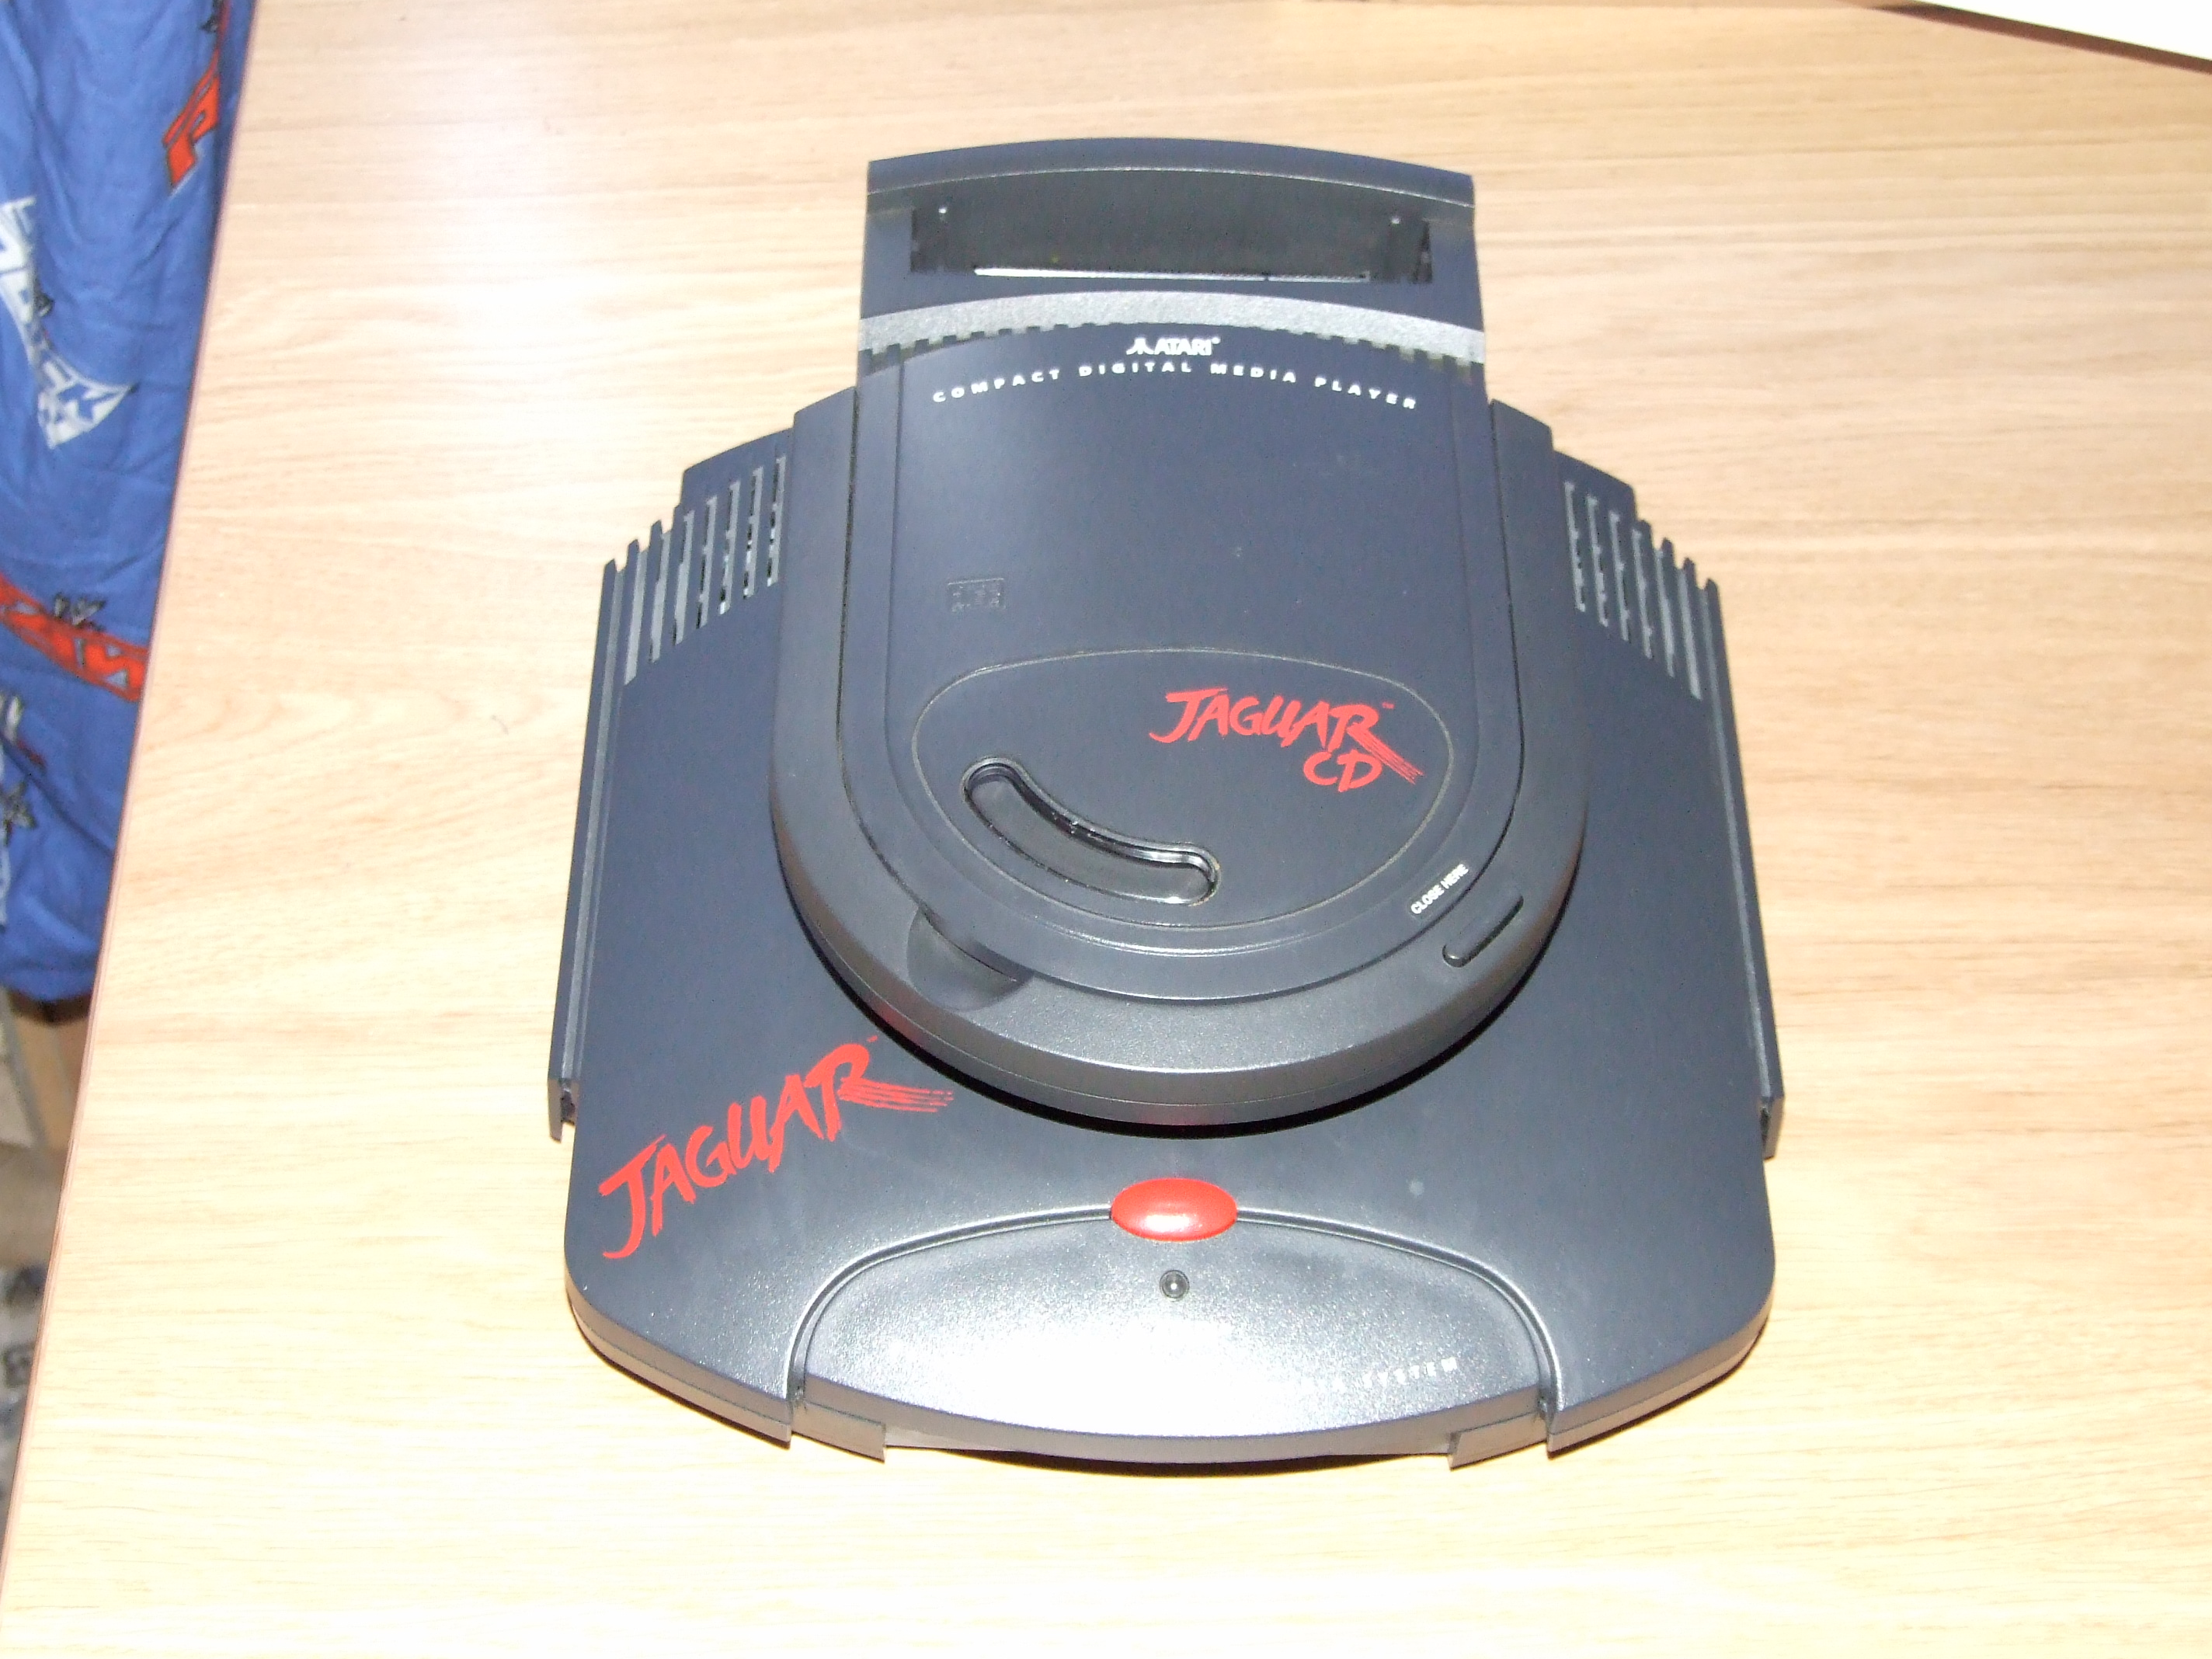 The Jaguar CD attached to the Jaguar.